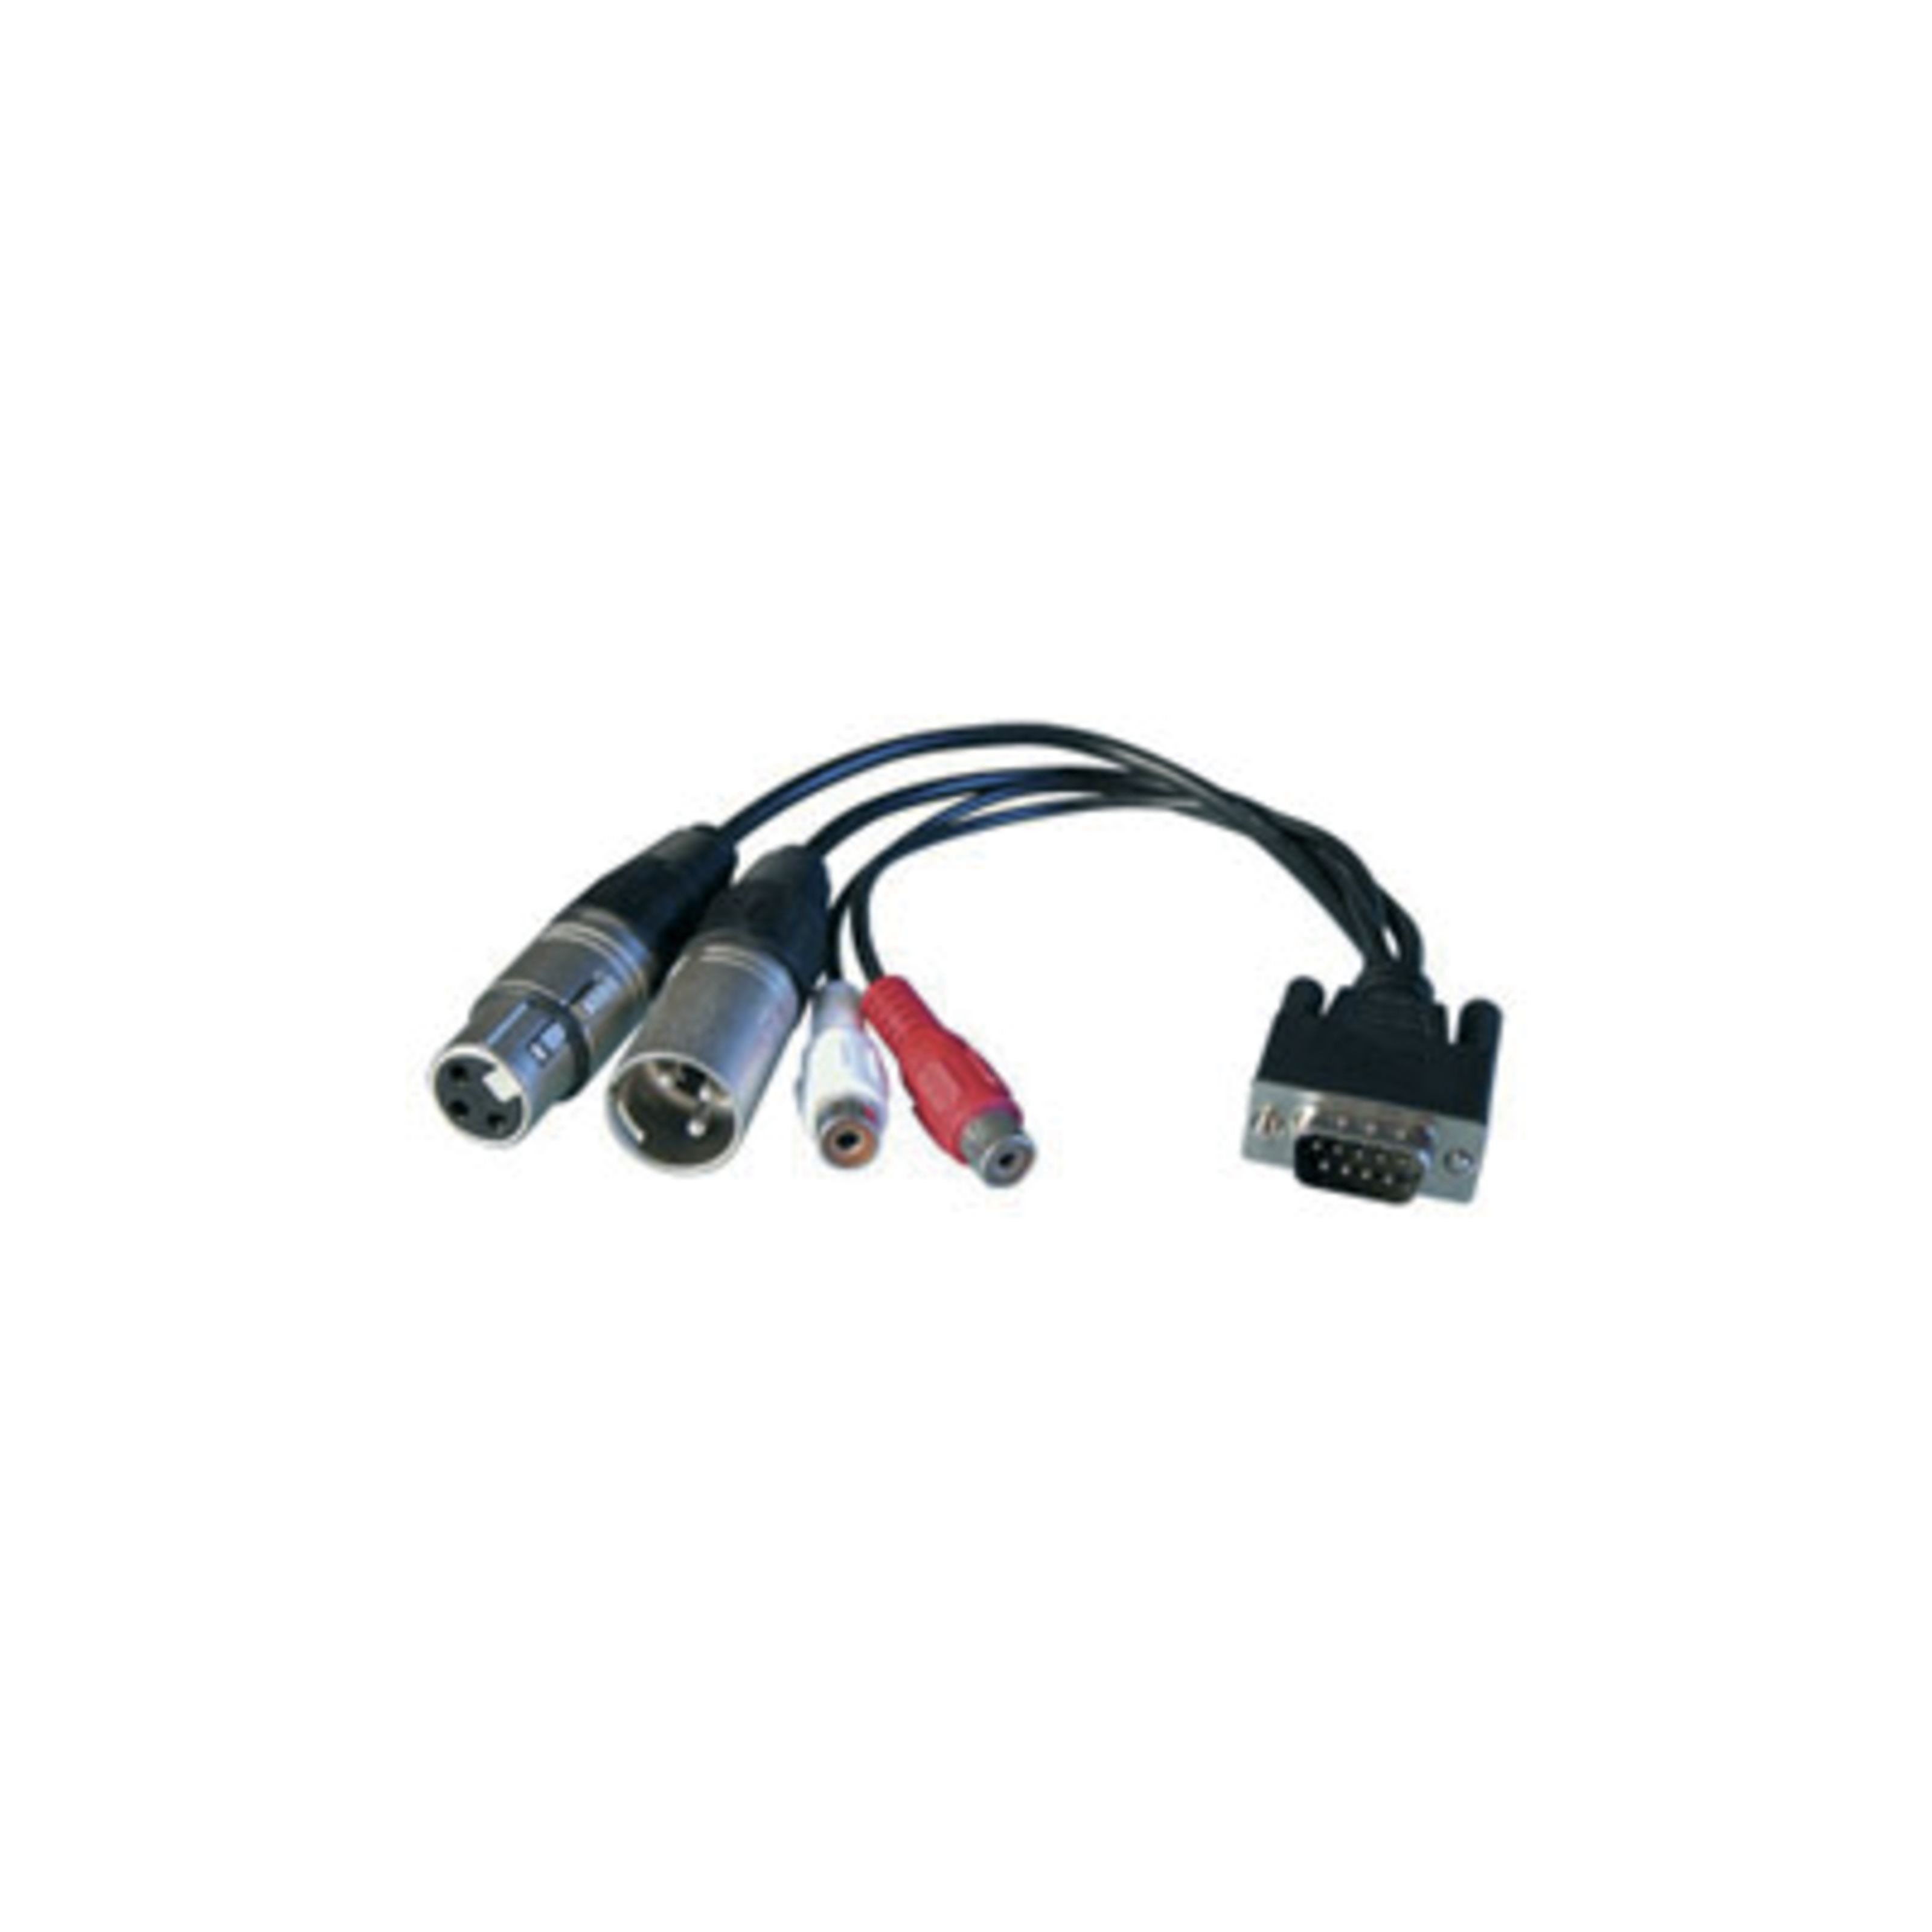 RME - BO968 - AES Breakout Kabel RayDat, AIO, 9632 1000058